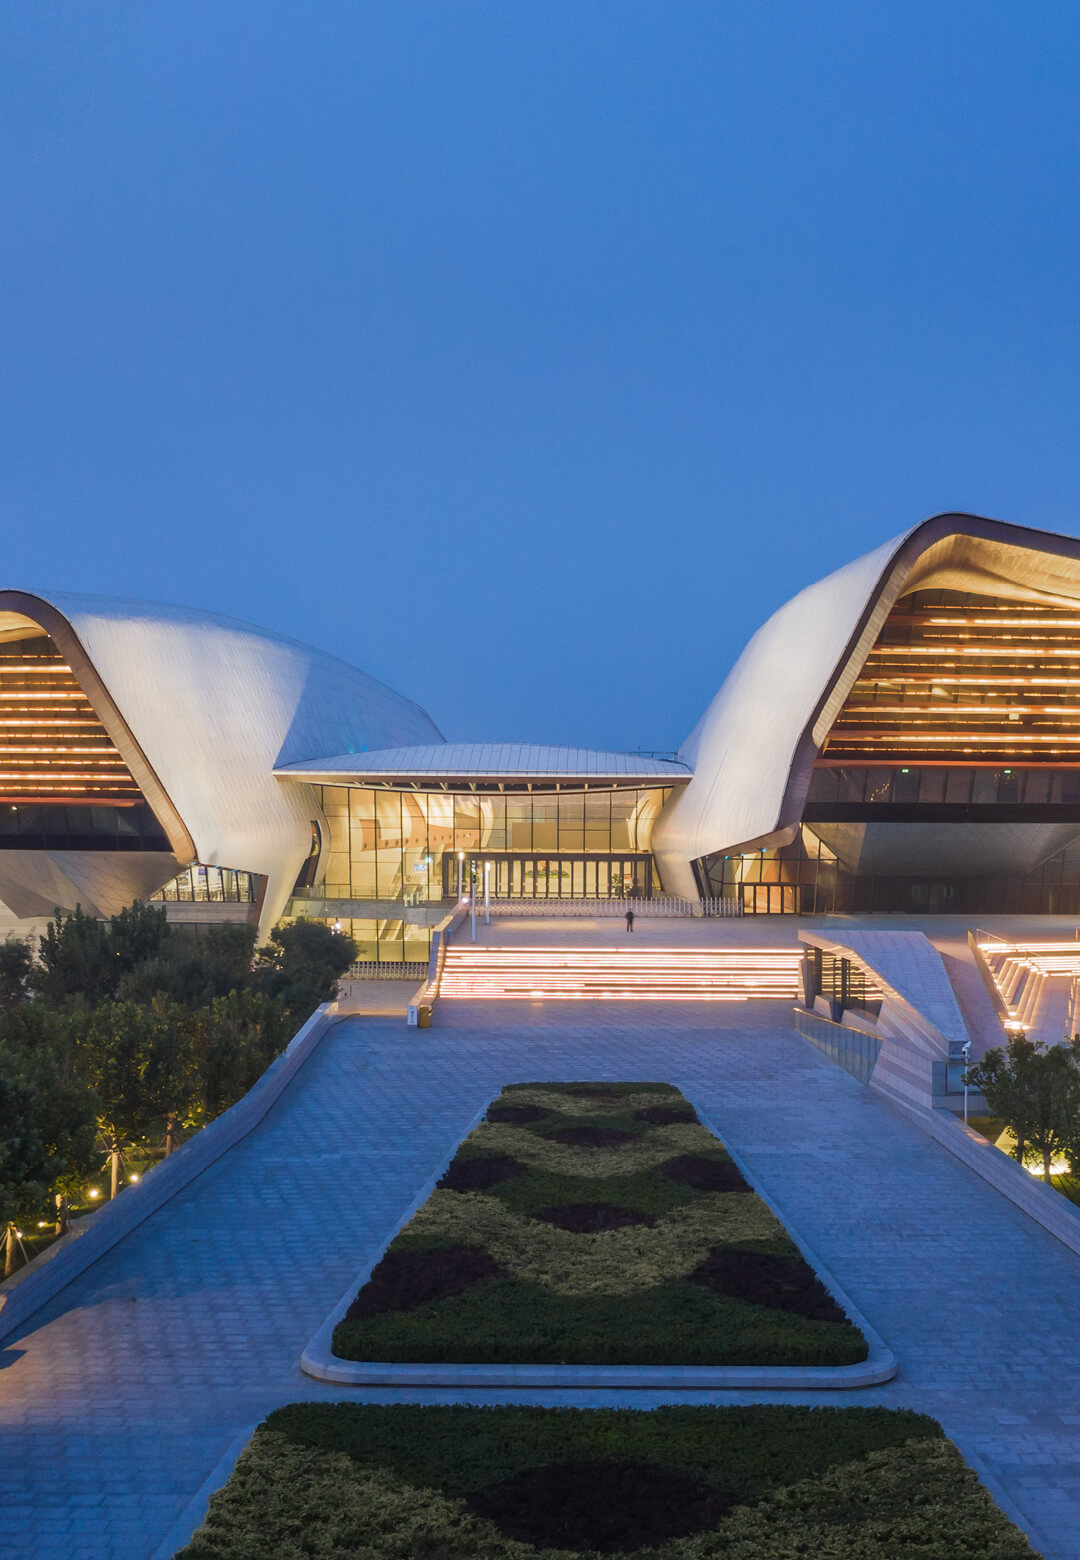 China's first National Maritime Museum designed by Australia-based architecture firm COX Architecture | National Maritime Museum of China | Cox Architecture | STIRworld